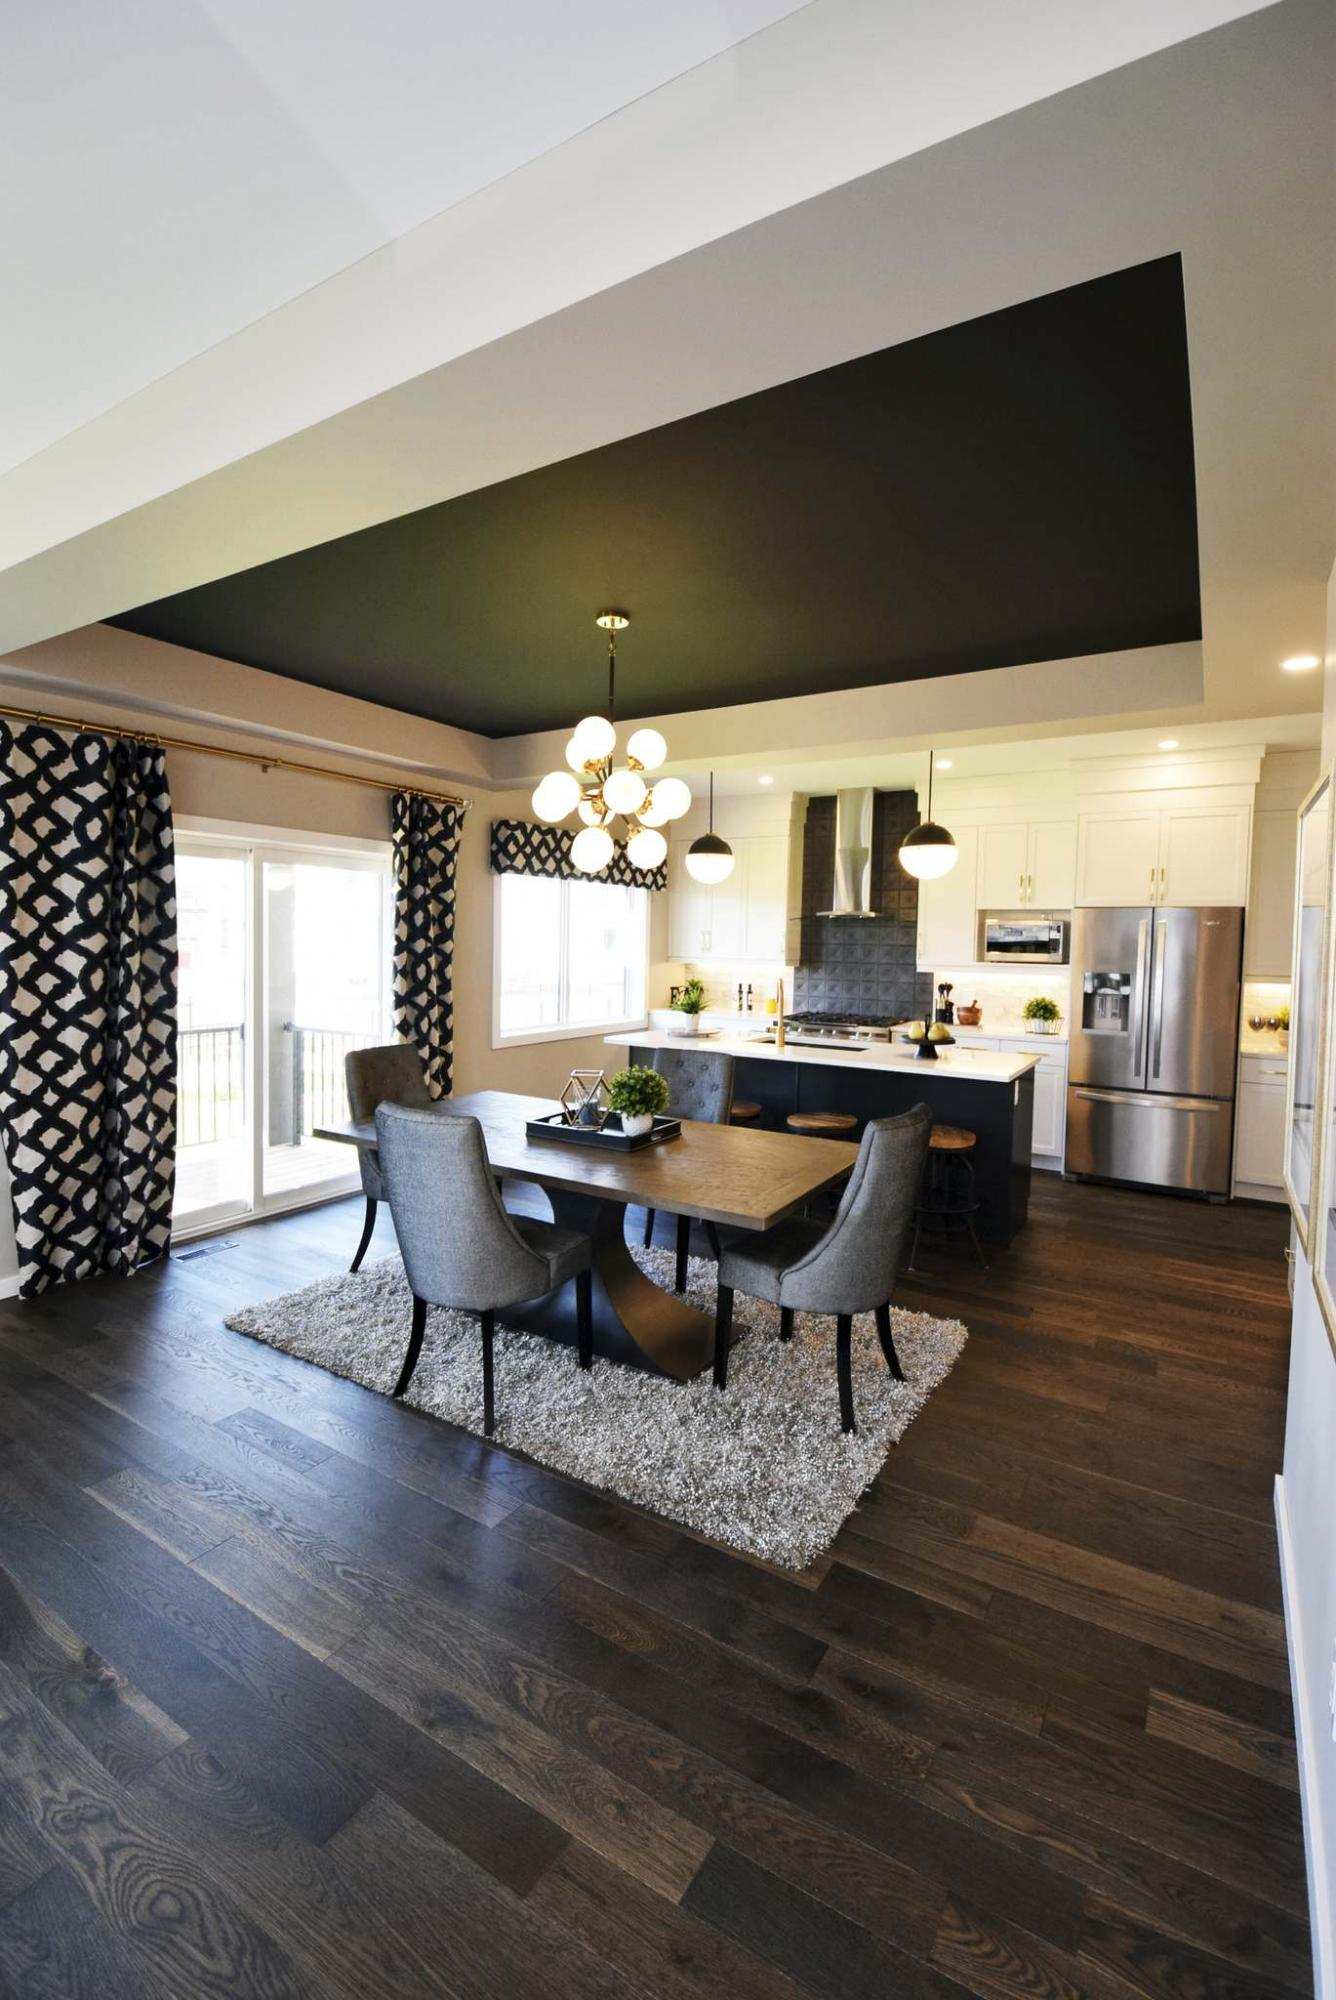 <p>Todd Lewys / Winnipeg Free Press</p><p>This year's Fall Parade of Homes features 137 show homes from 38 homebuilders — there's sure to be something for everyone.</p>